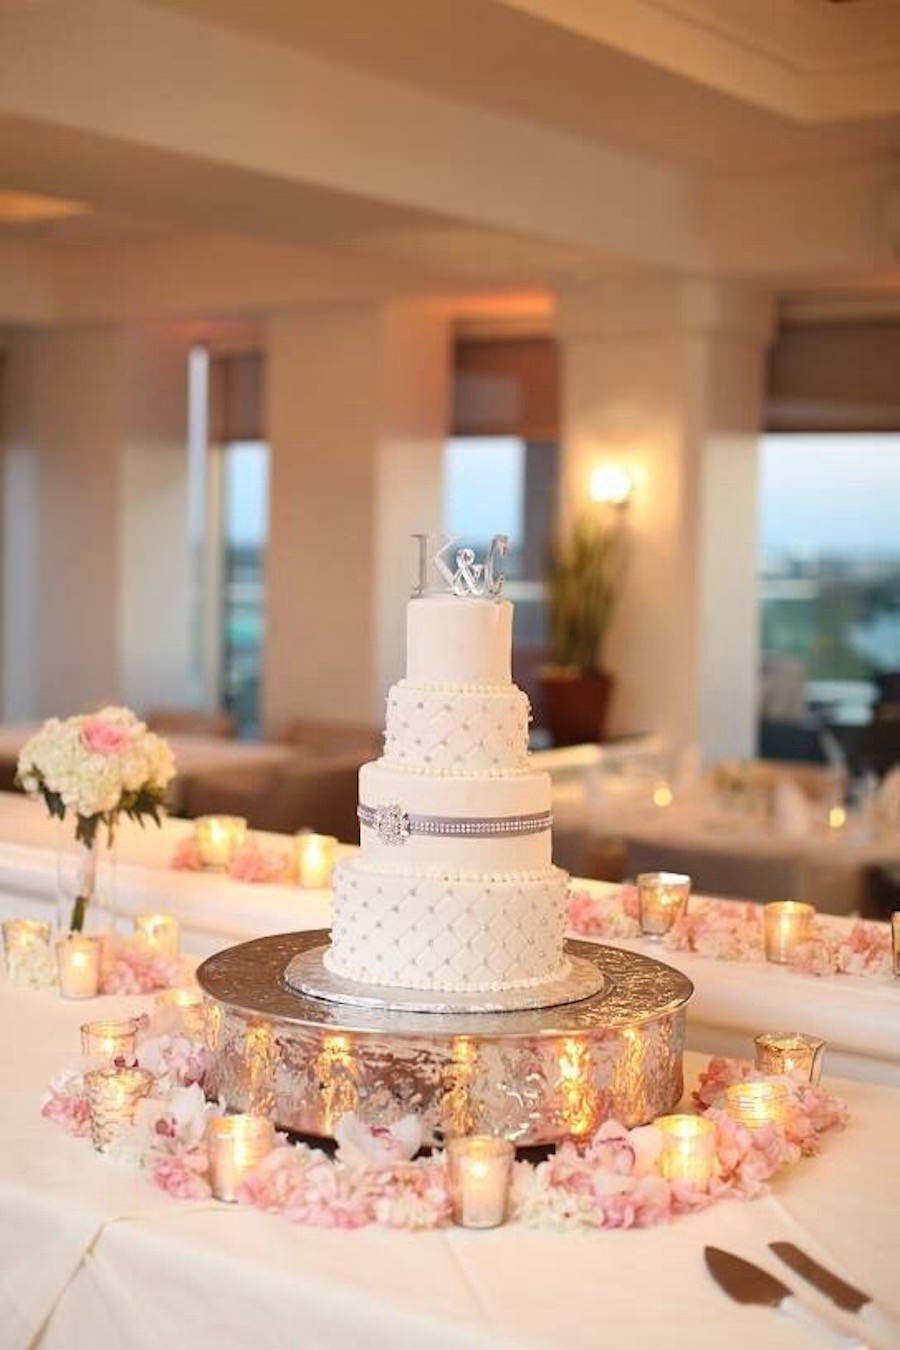 Four Tiered white Wedding Cake on Large Silver Cake Stand with Embellished Design | Tampa Wedding Cake Bakery A Piece of Cake and Desserts